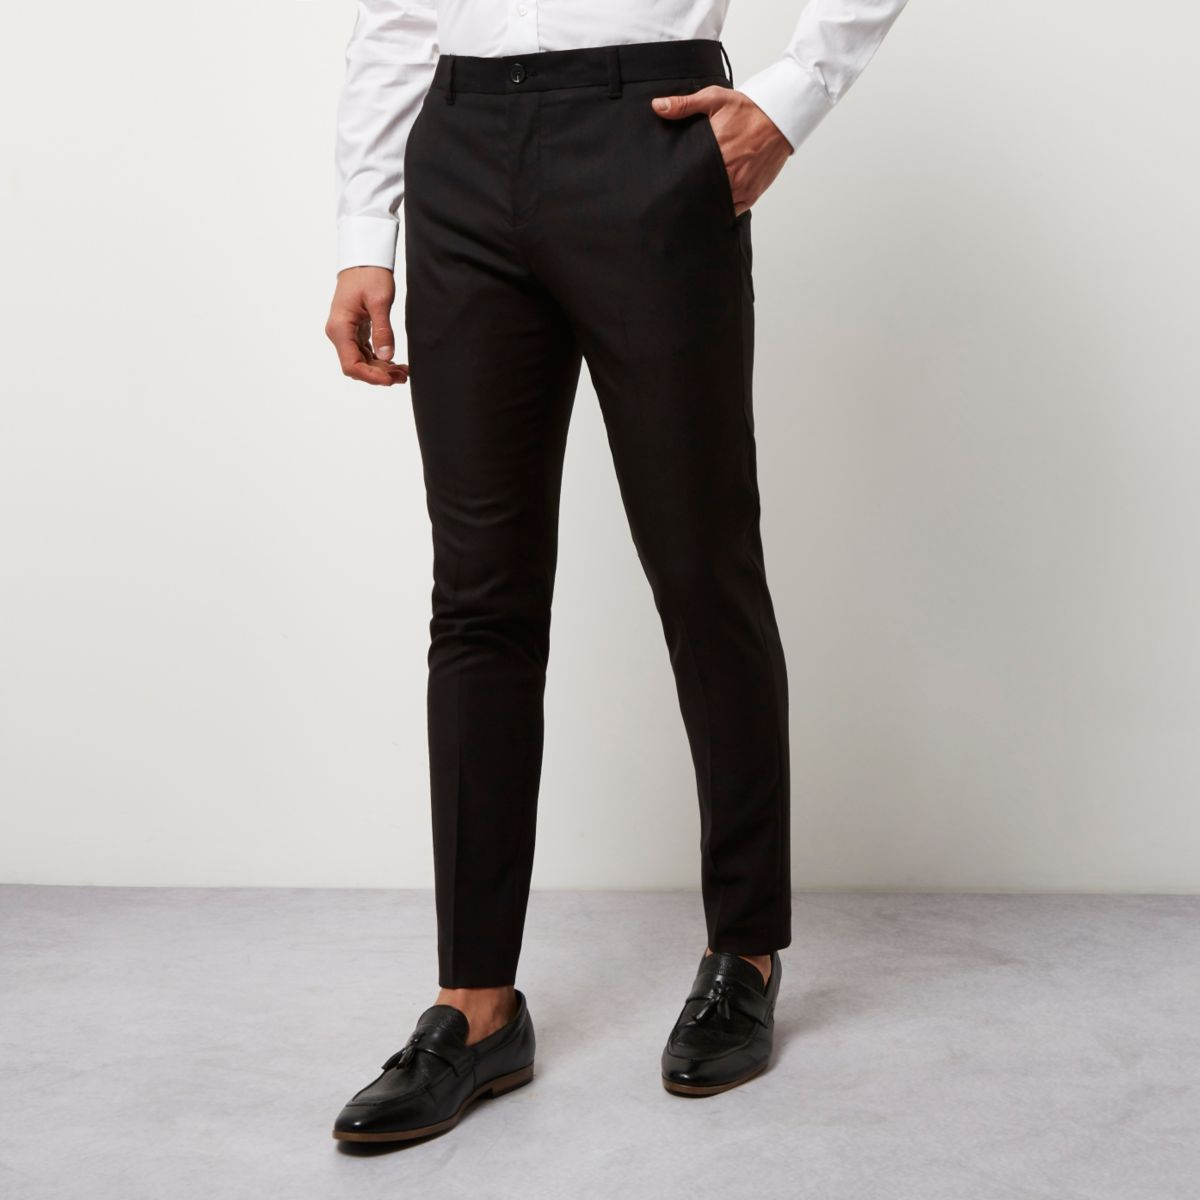 Find black from the Womens department at Debenhams. Shop a wide range of Smart trousers products and more at our online shop today.